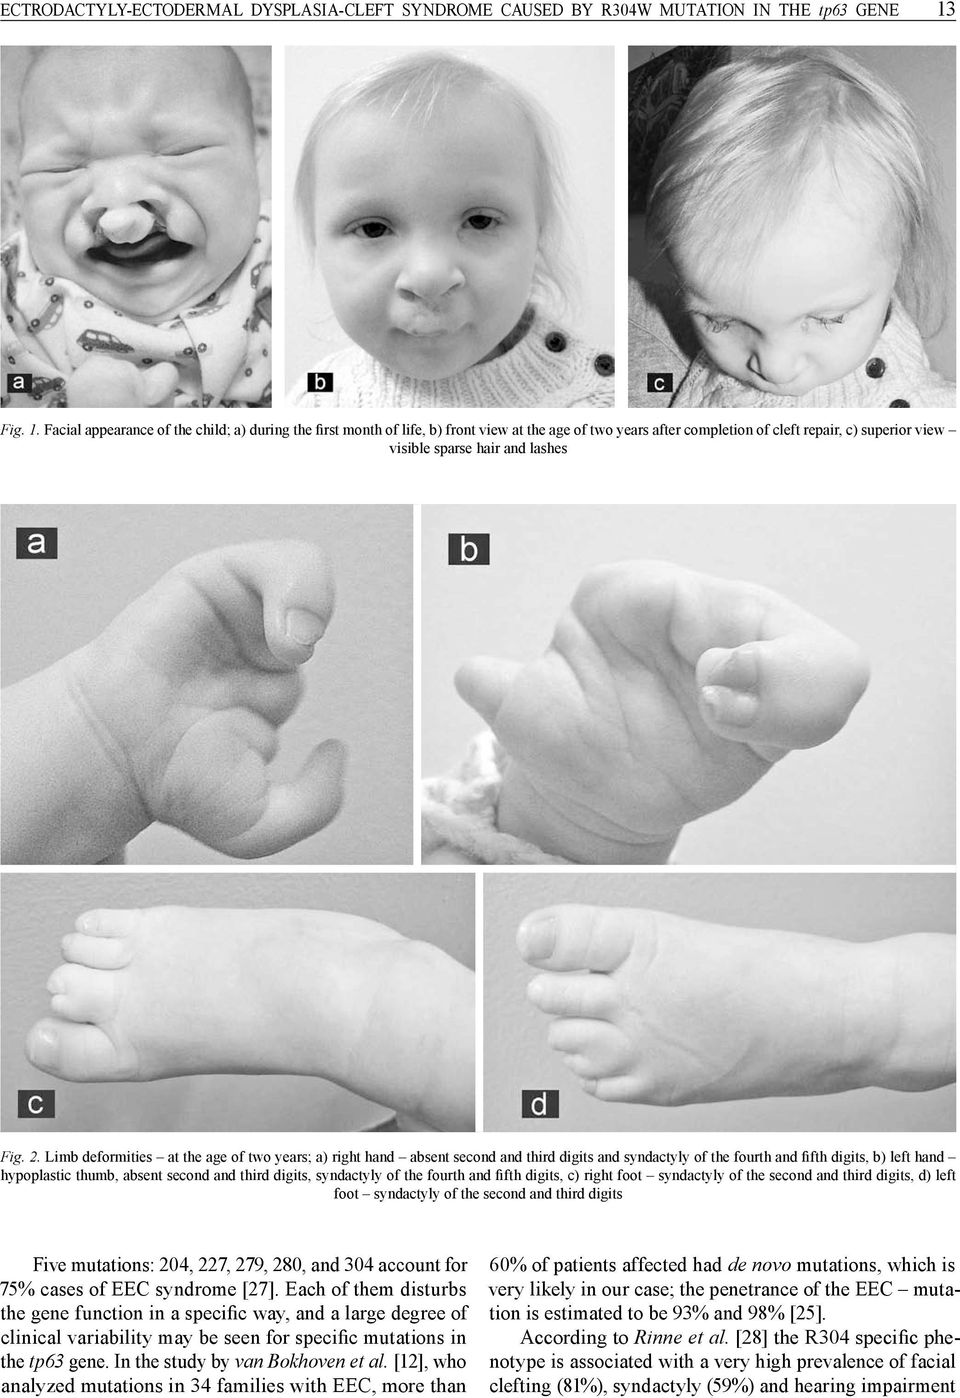 2. Limb deformities at the age of two years; a) right hand absent second and third digits and syndactyly of the fourth and fifth digits, b) left hand hypoplastic thumb, absent second and third